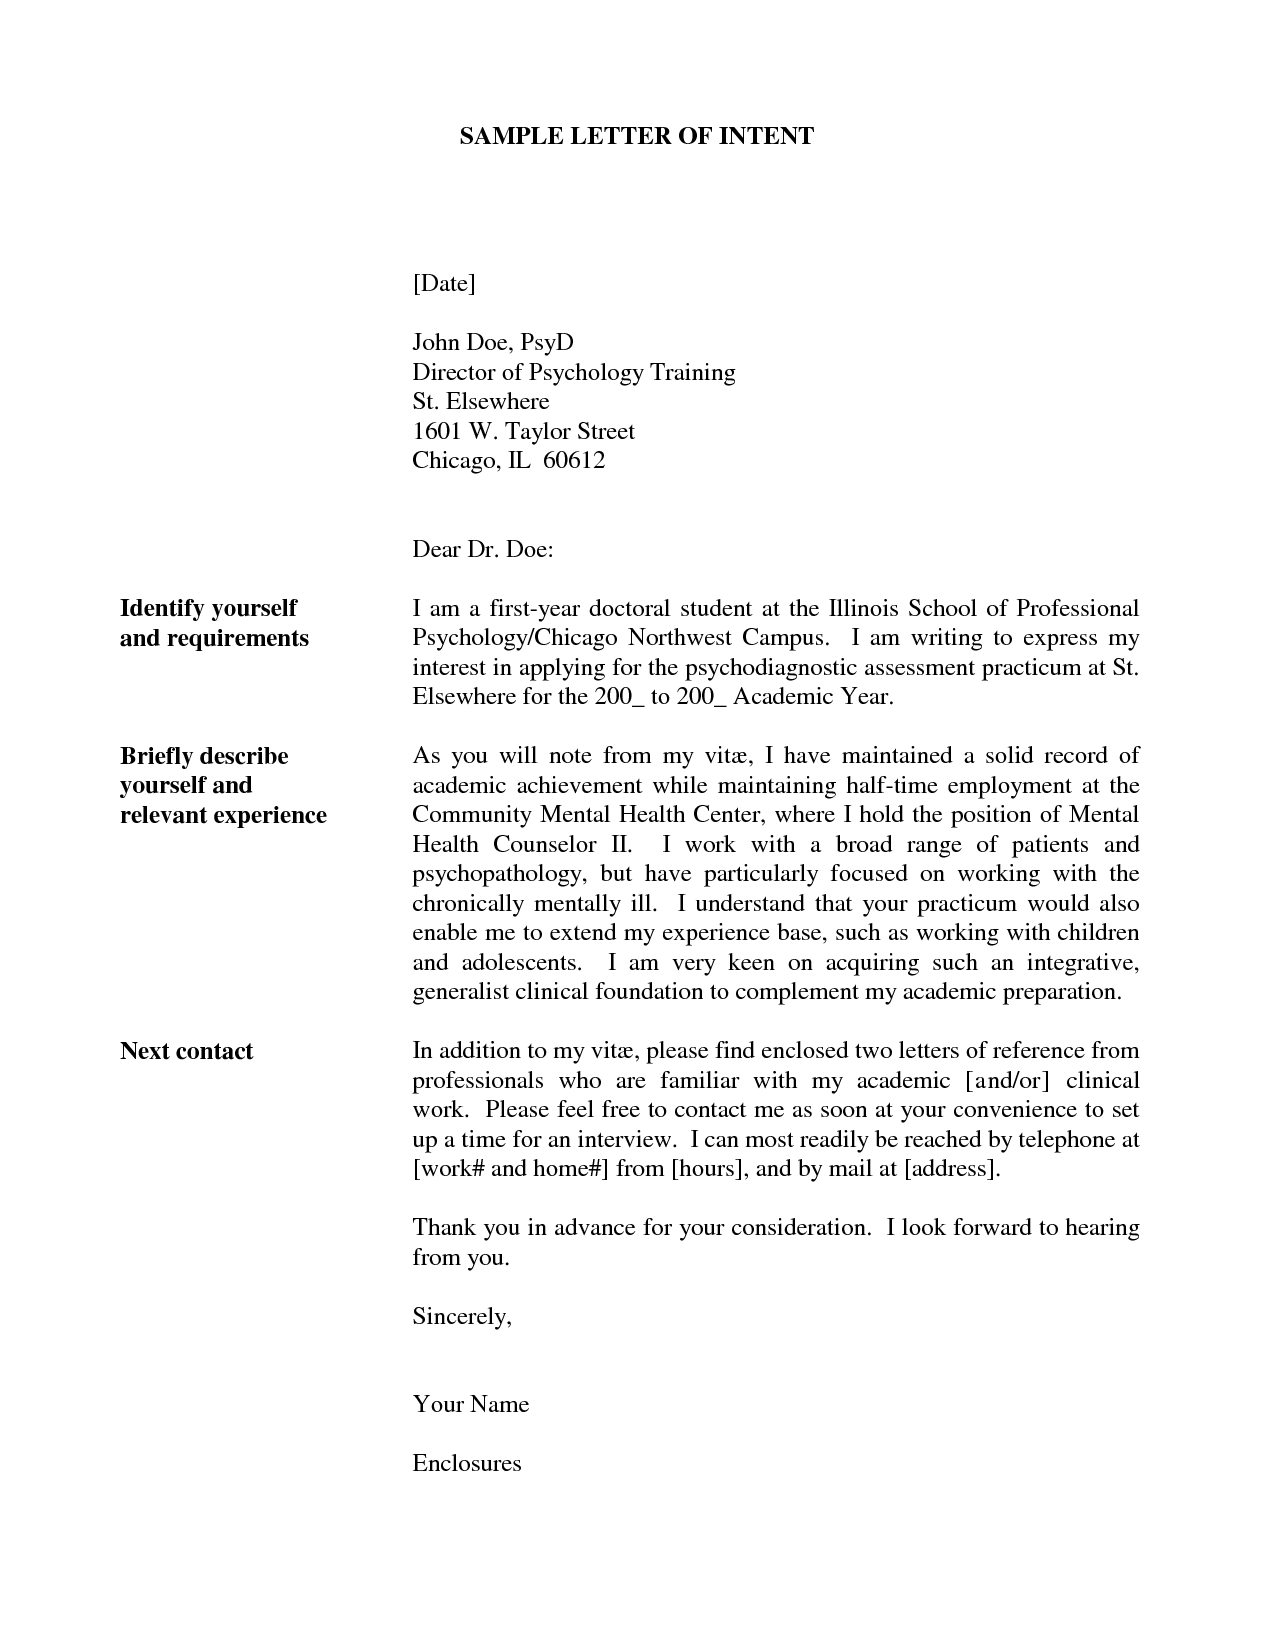 Doc12751650 Letter of Intent for Employment Template Letter – Letter of Intention Template